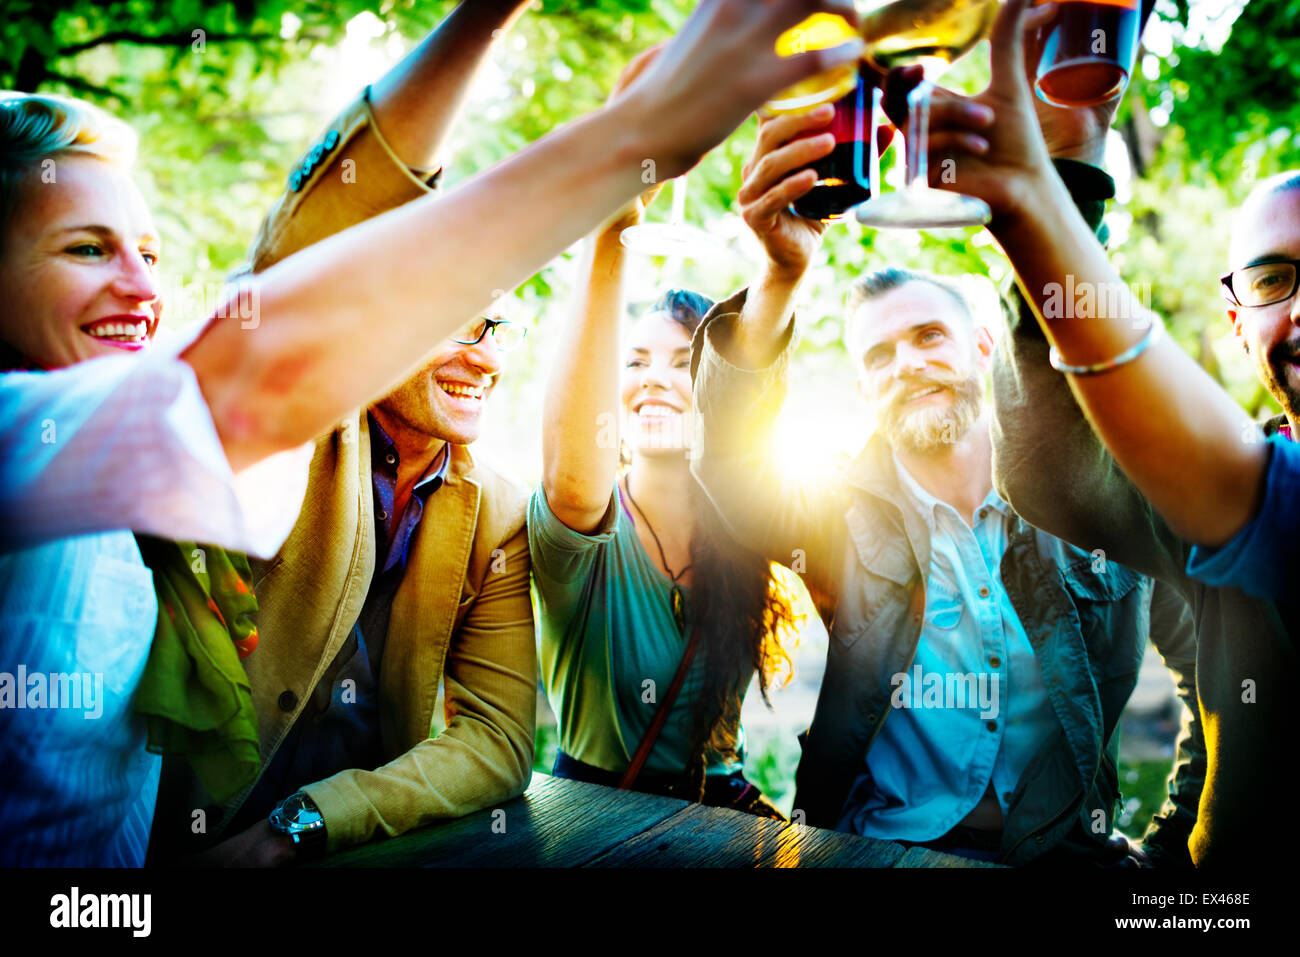 Friends Party en plein air Concept Bonheur Célébration Photo Stock